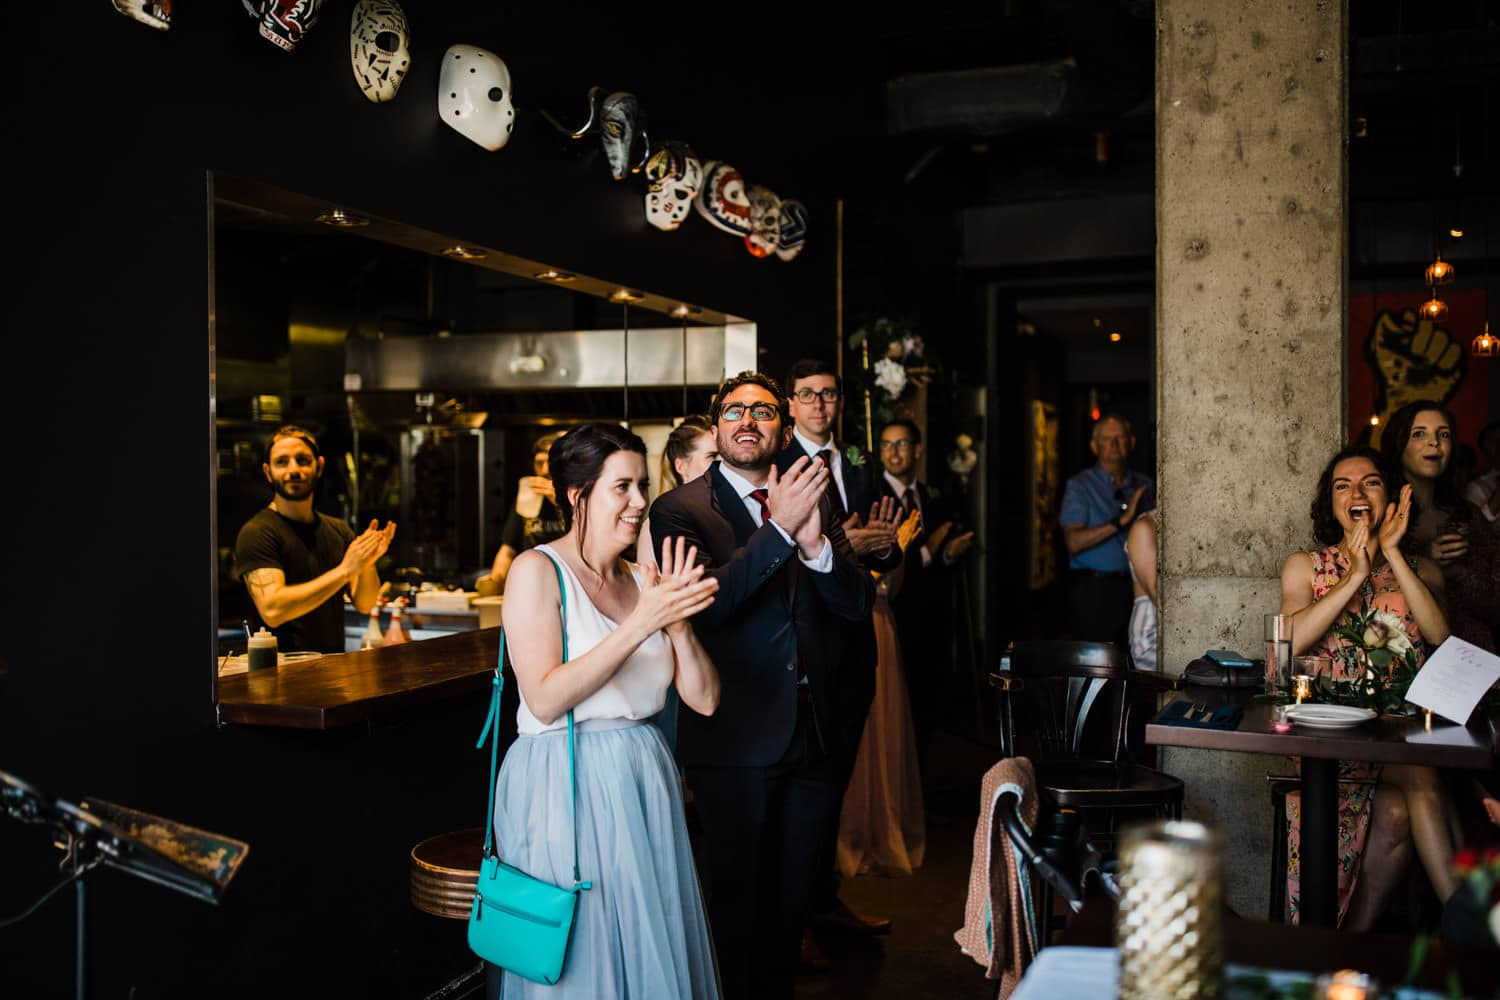 guests cheer for bride and groom - downtown ottawa wedding - el camino